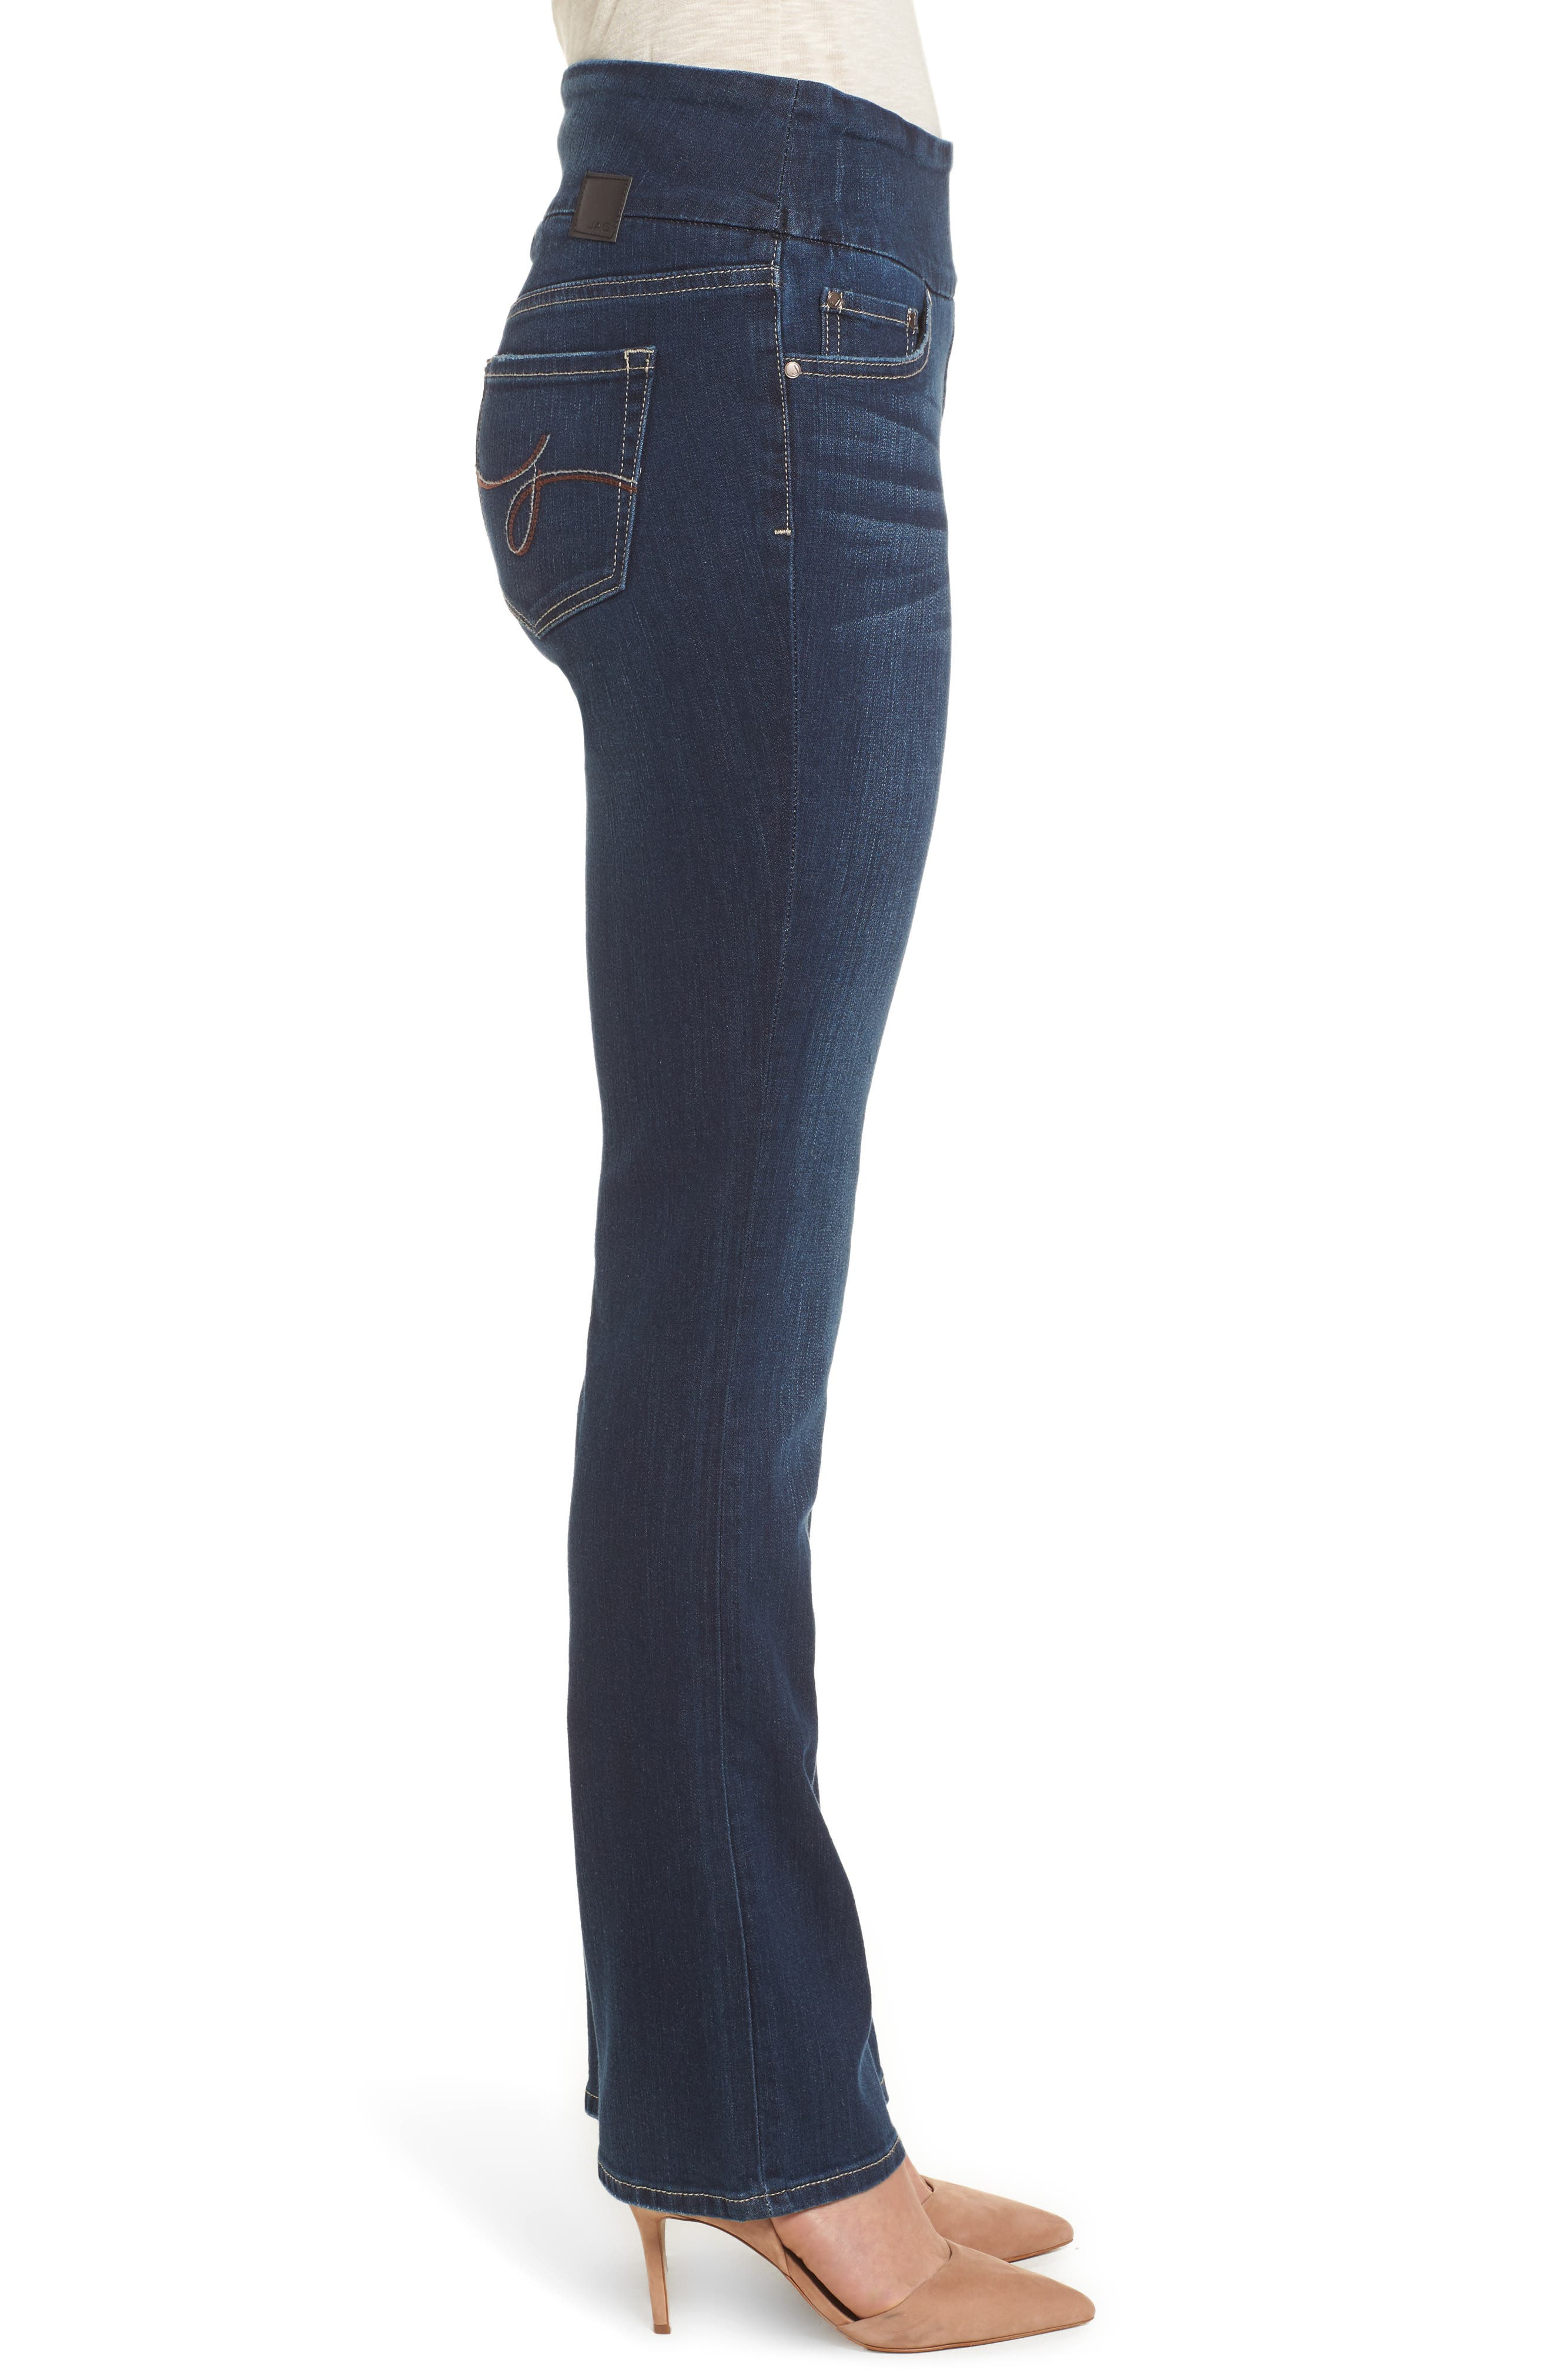 Paley Stretch Bootcut Jeans,                             Alternate thumbnail 3, color,                             DARK INDIGO